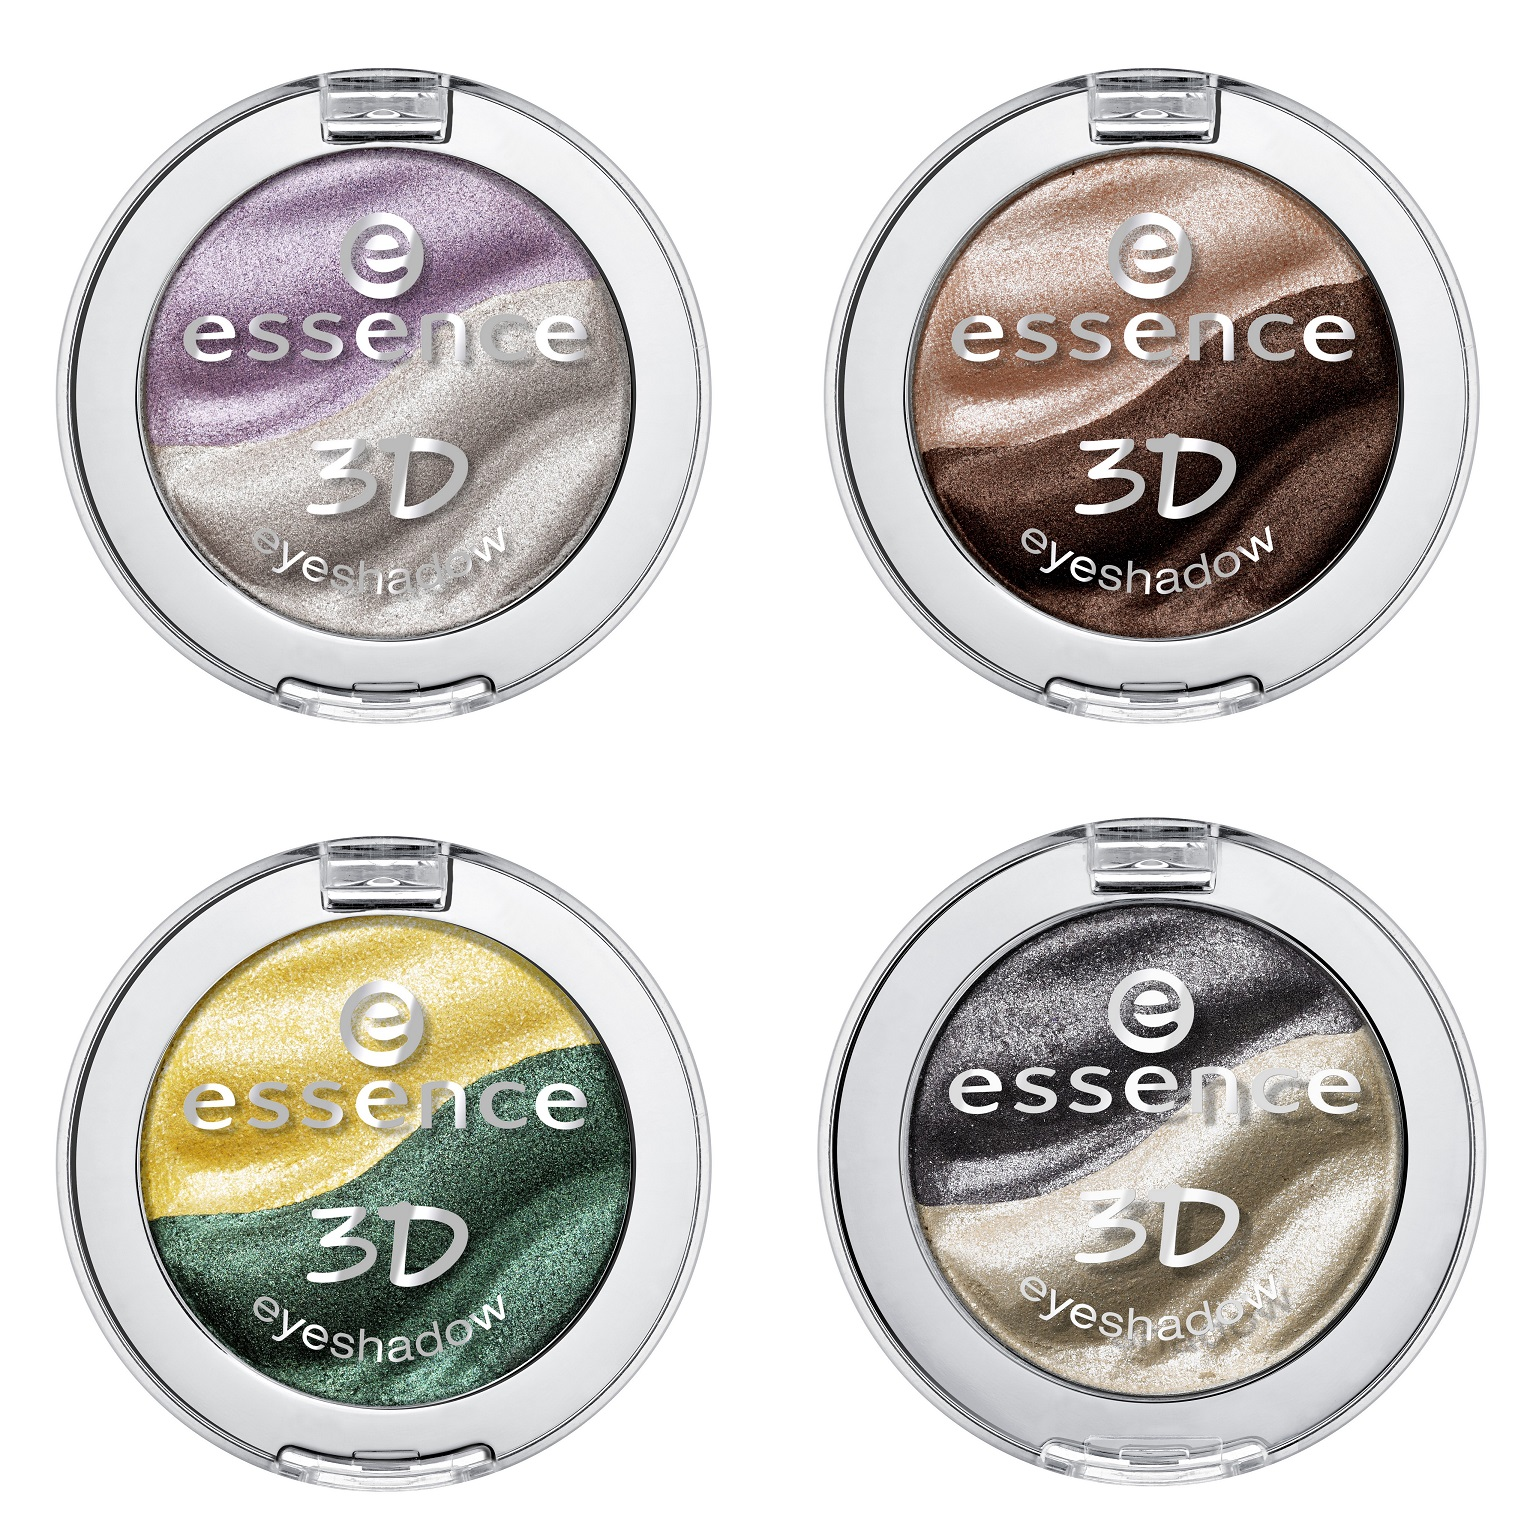 essence new in town – 3D eyeshadow